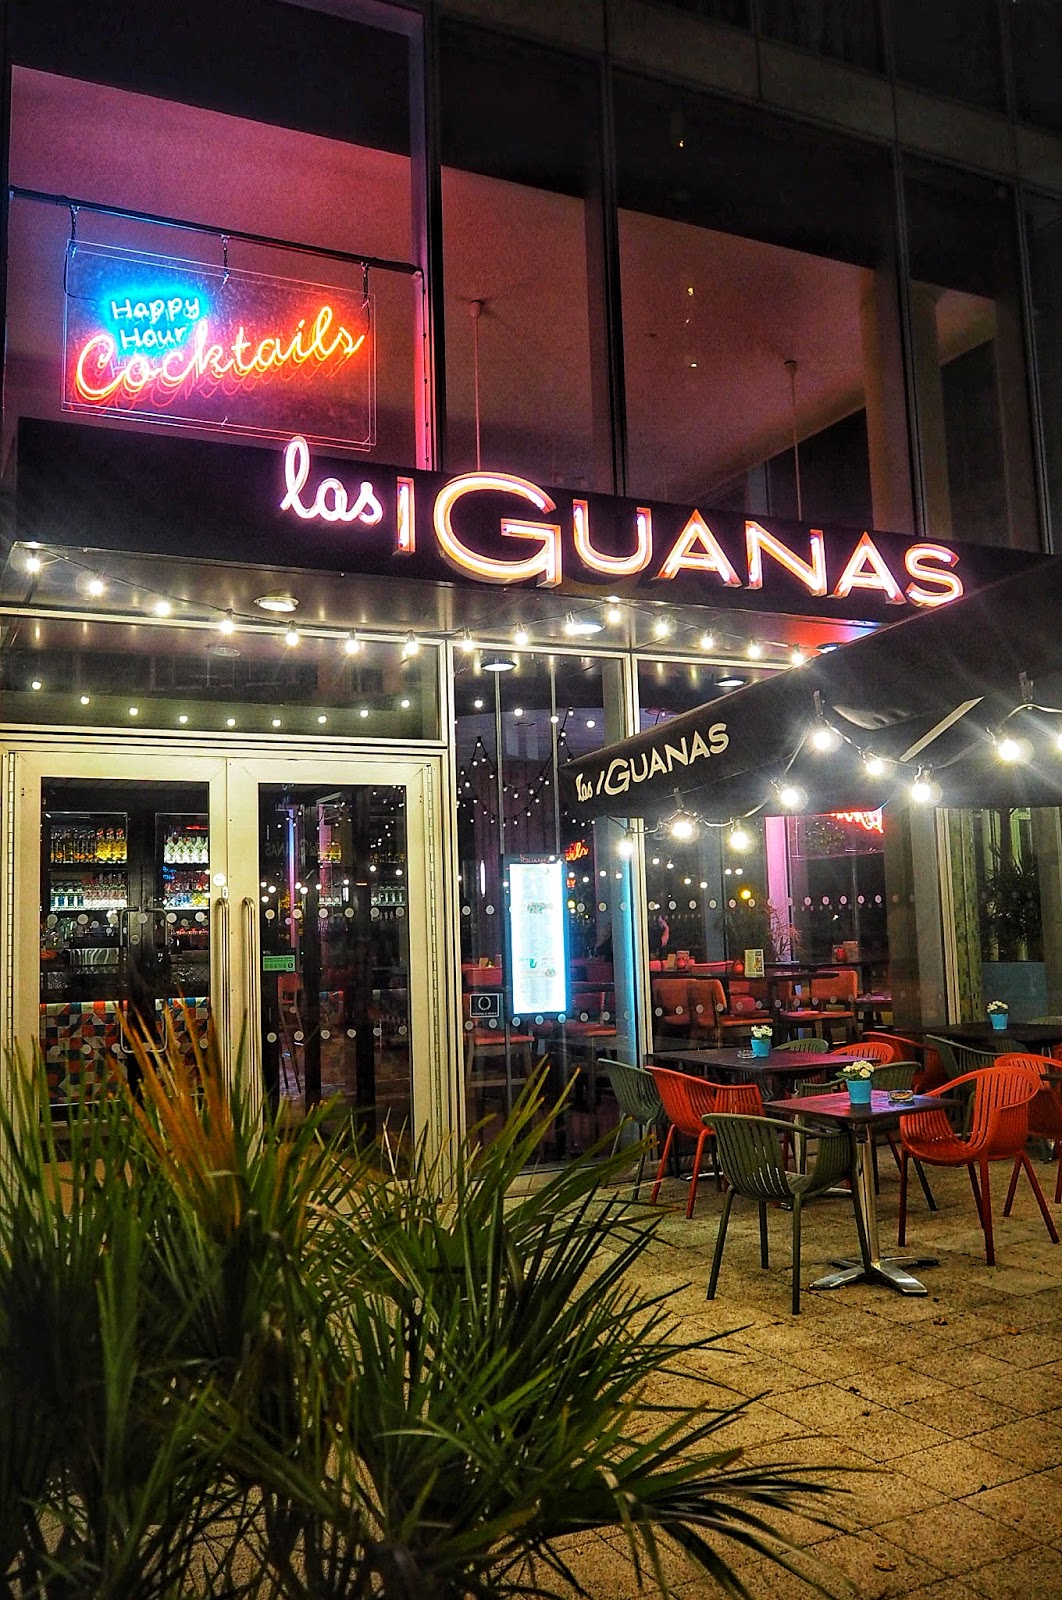 Las Iguanas, Milton Keynes, MK, LoveMK, South American, Food, Restaurant, cocktails, The Hub, www.thelifeofasocialbutterfly.co.uk, Jaz, MK Blogger, Lifestyle Blogger, Foodie